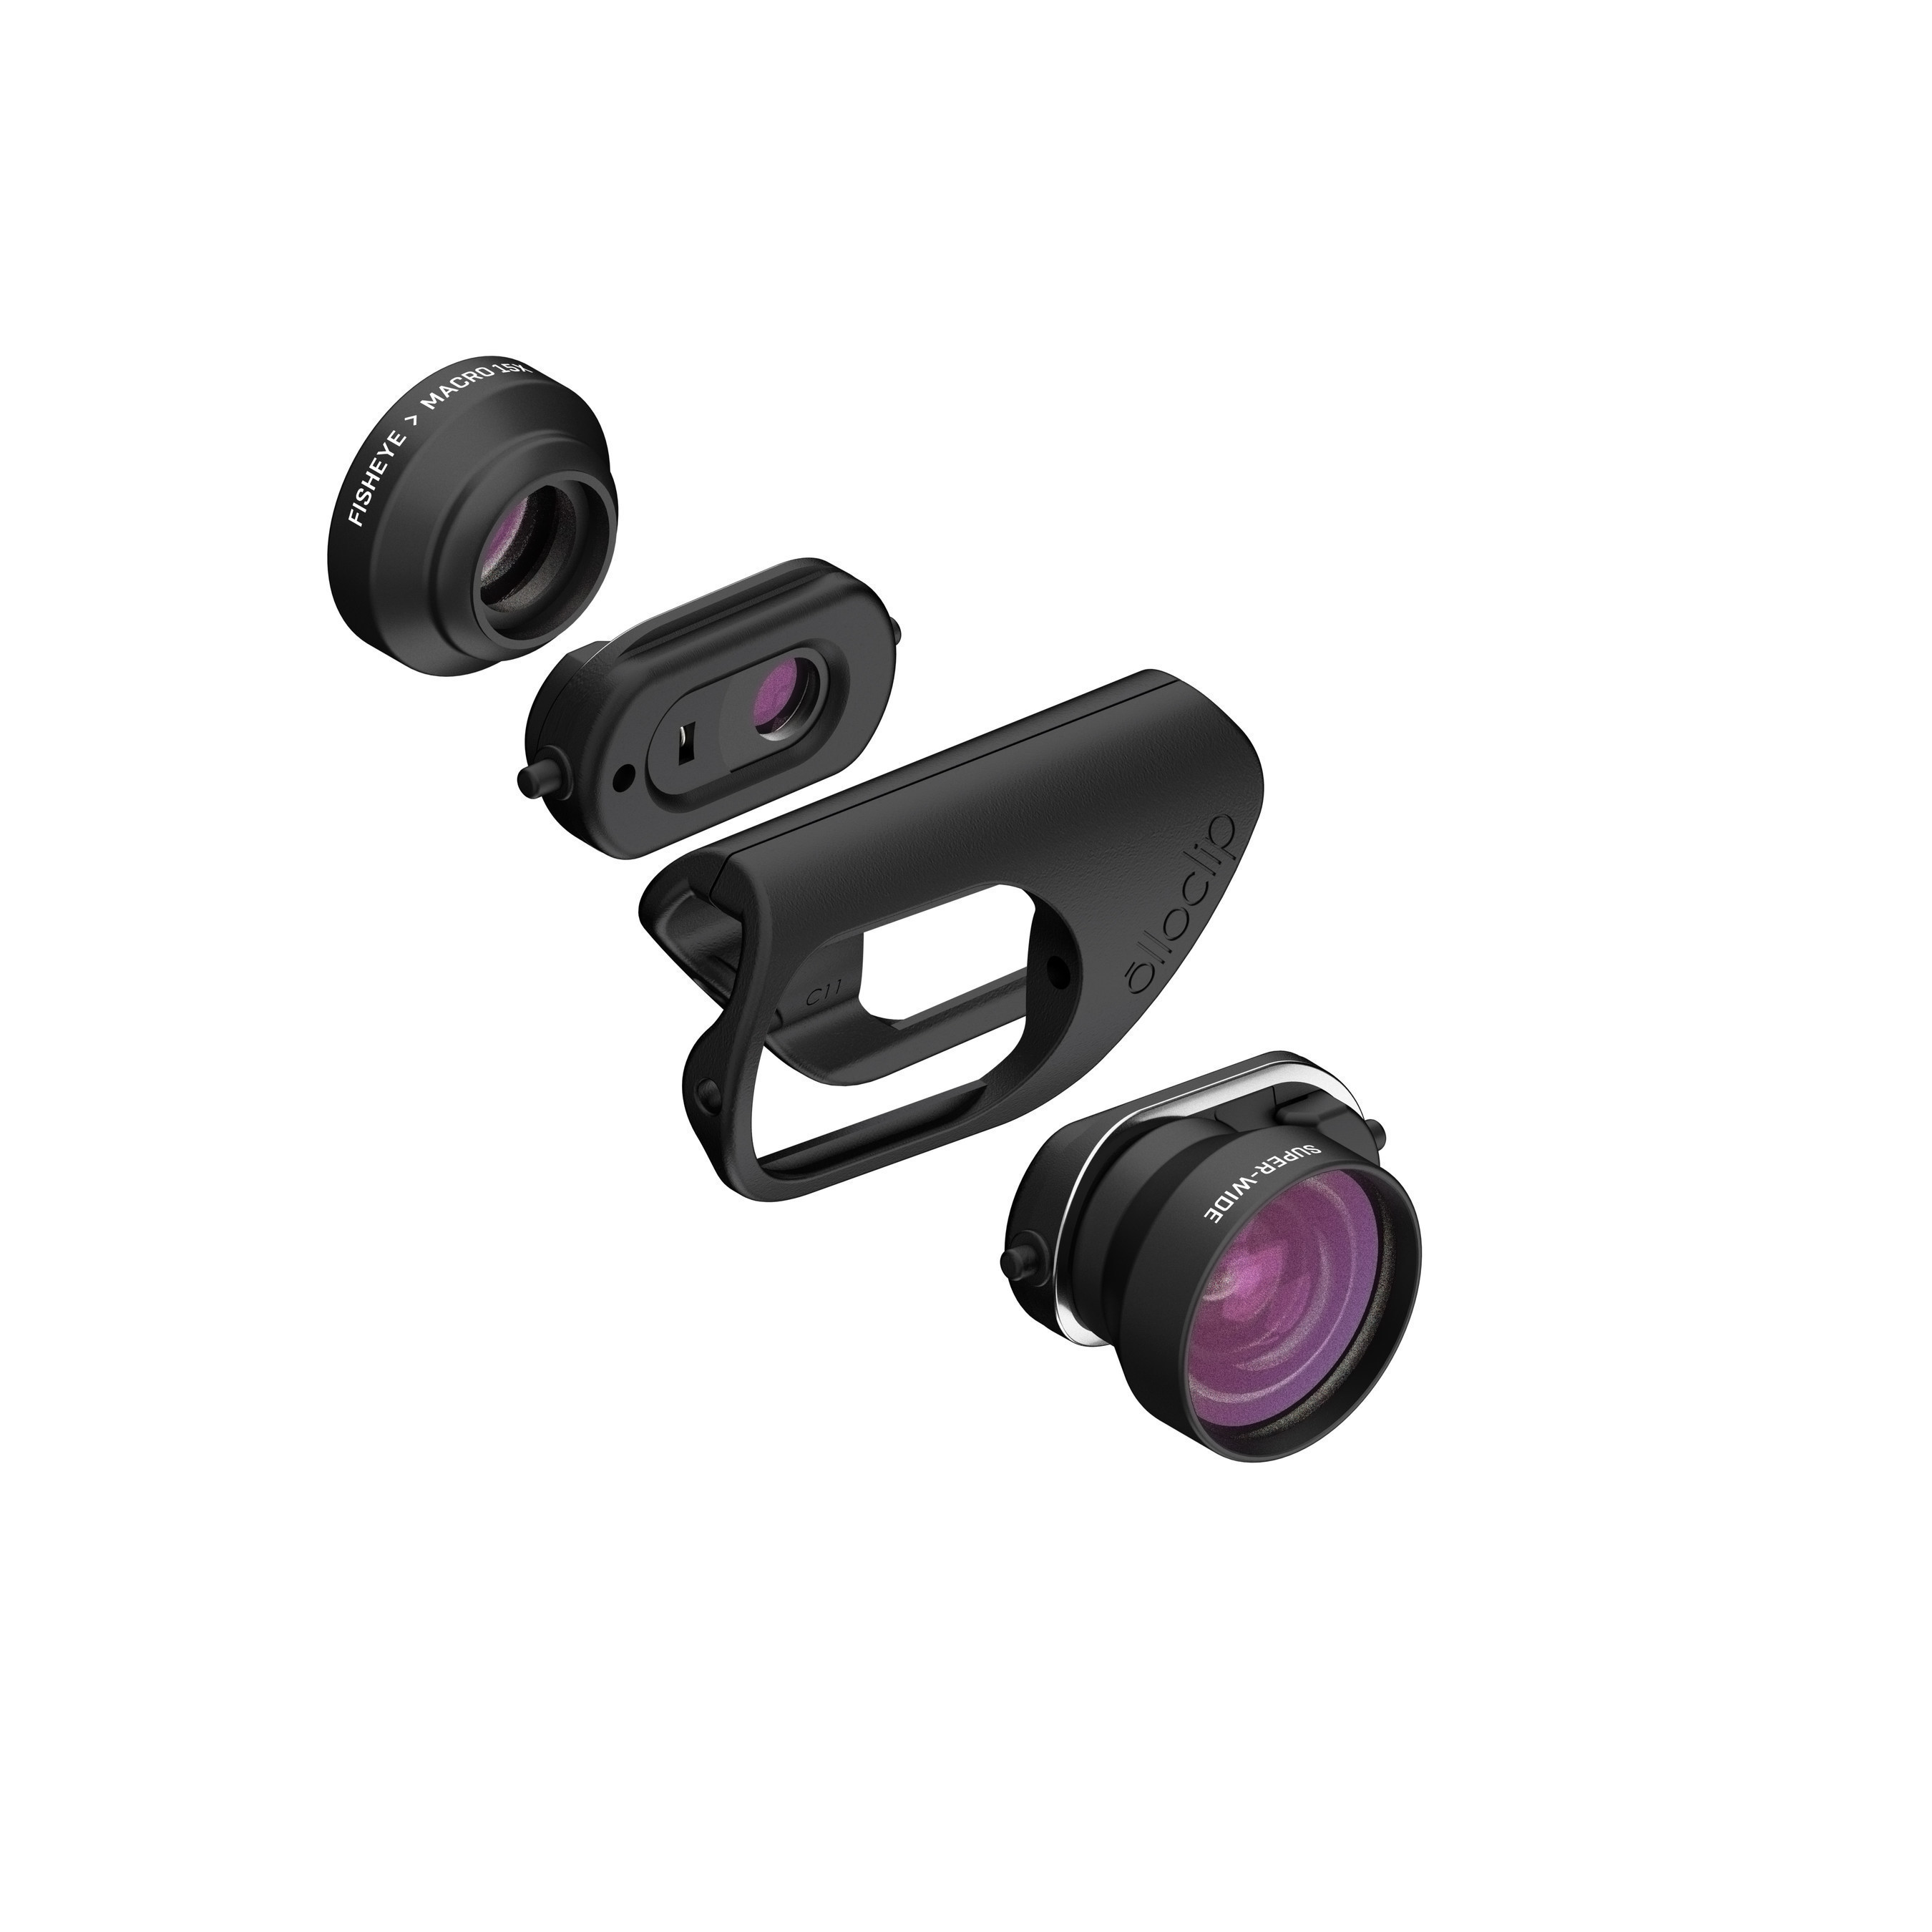 olloclip's newly designed mobile photography lens sets for iPhone 7 and 7 Plus feature new premium multi-element optics, the new Connect(TM) interchangeable lens system and an innovative hinged lens base keeping the lens flush with the camera for improved optical performance while allowing compatibility with most screen protectors. This new design delivers premium optics in the simplest, quickest and most versatile mobile lens system ever created.